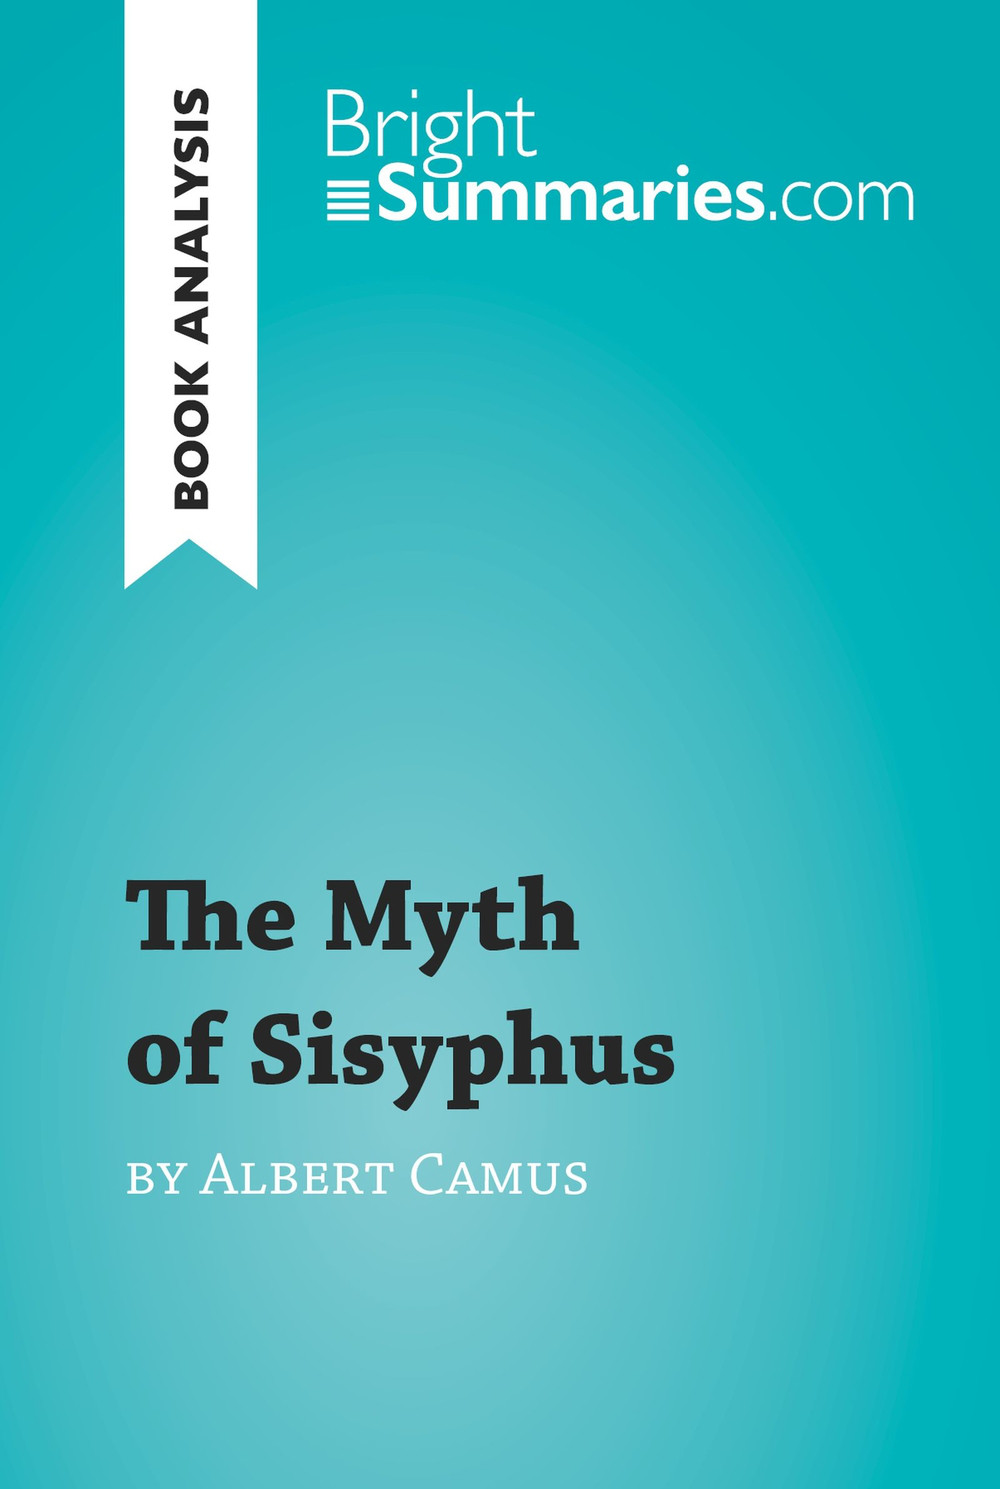 the myth of sisyphus by albert camus book analysis bright the myth of sisyphus by albert camus book analysis